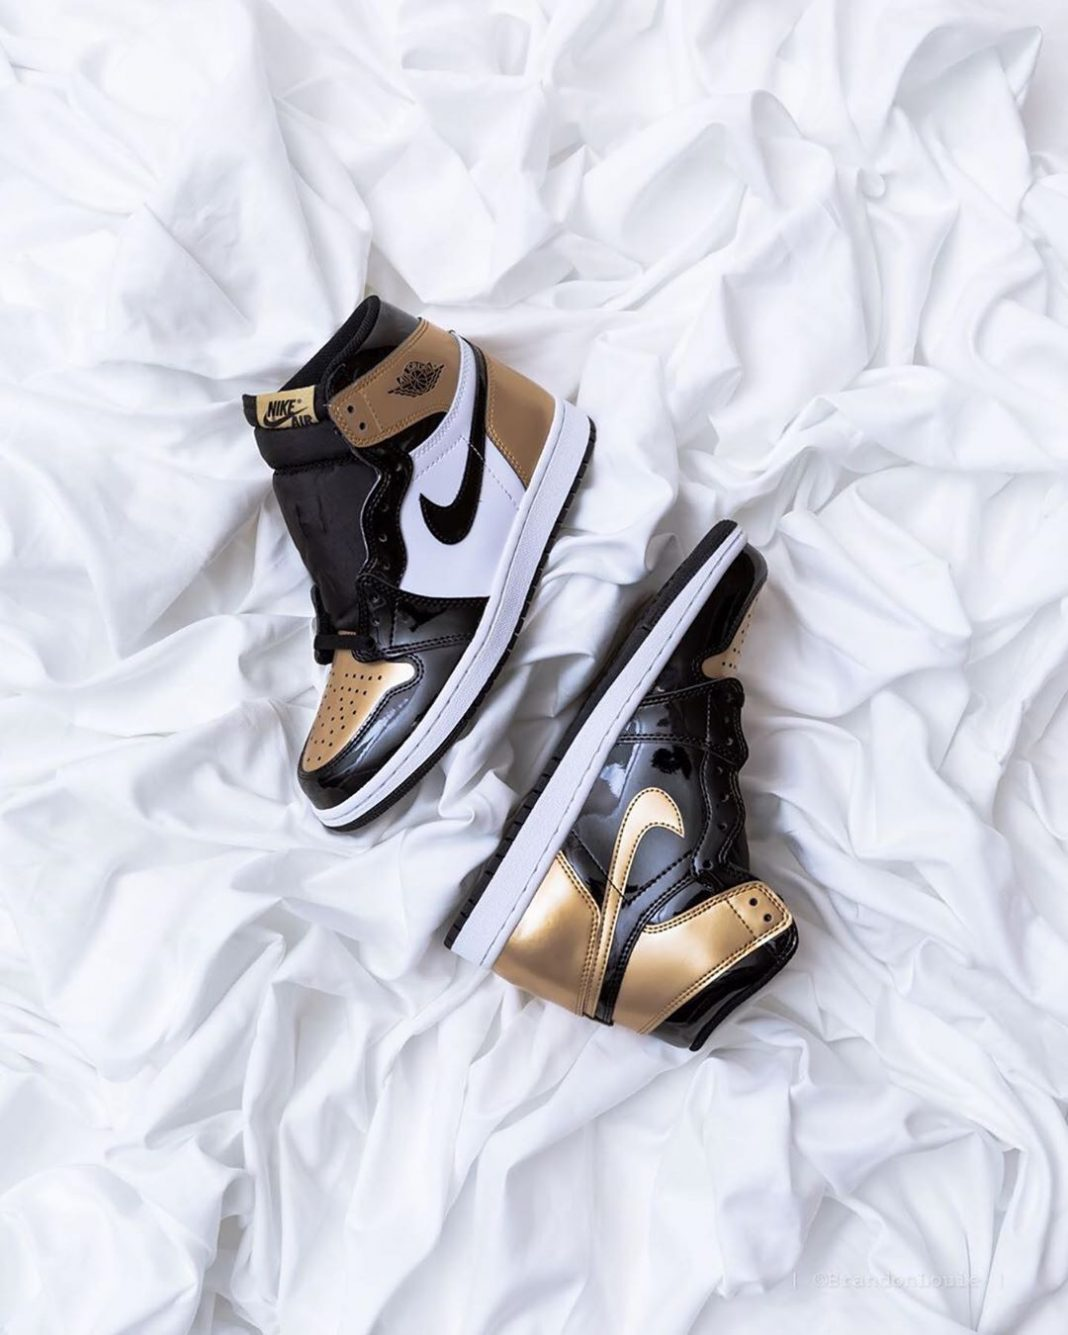 Gold toes ...